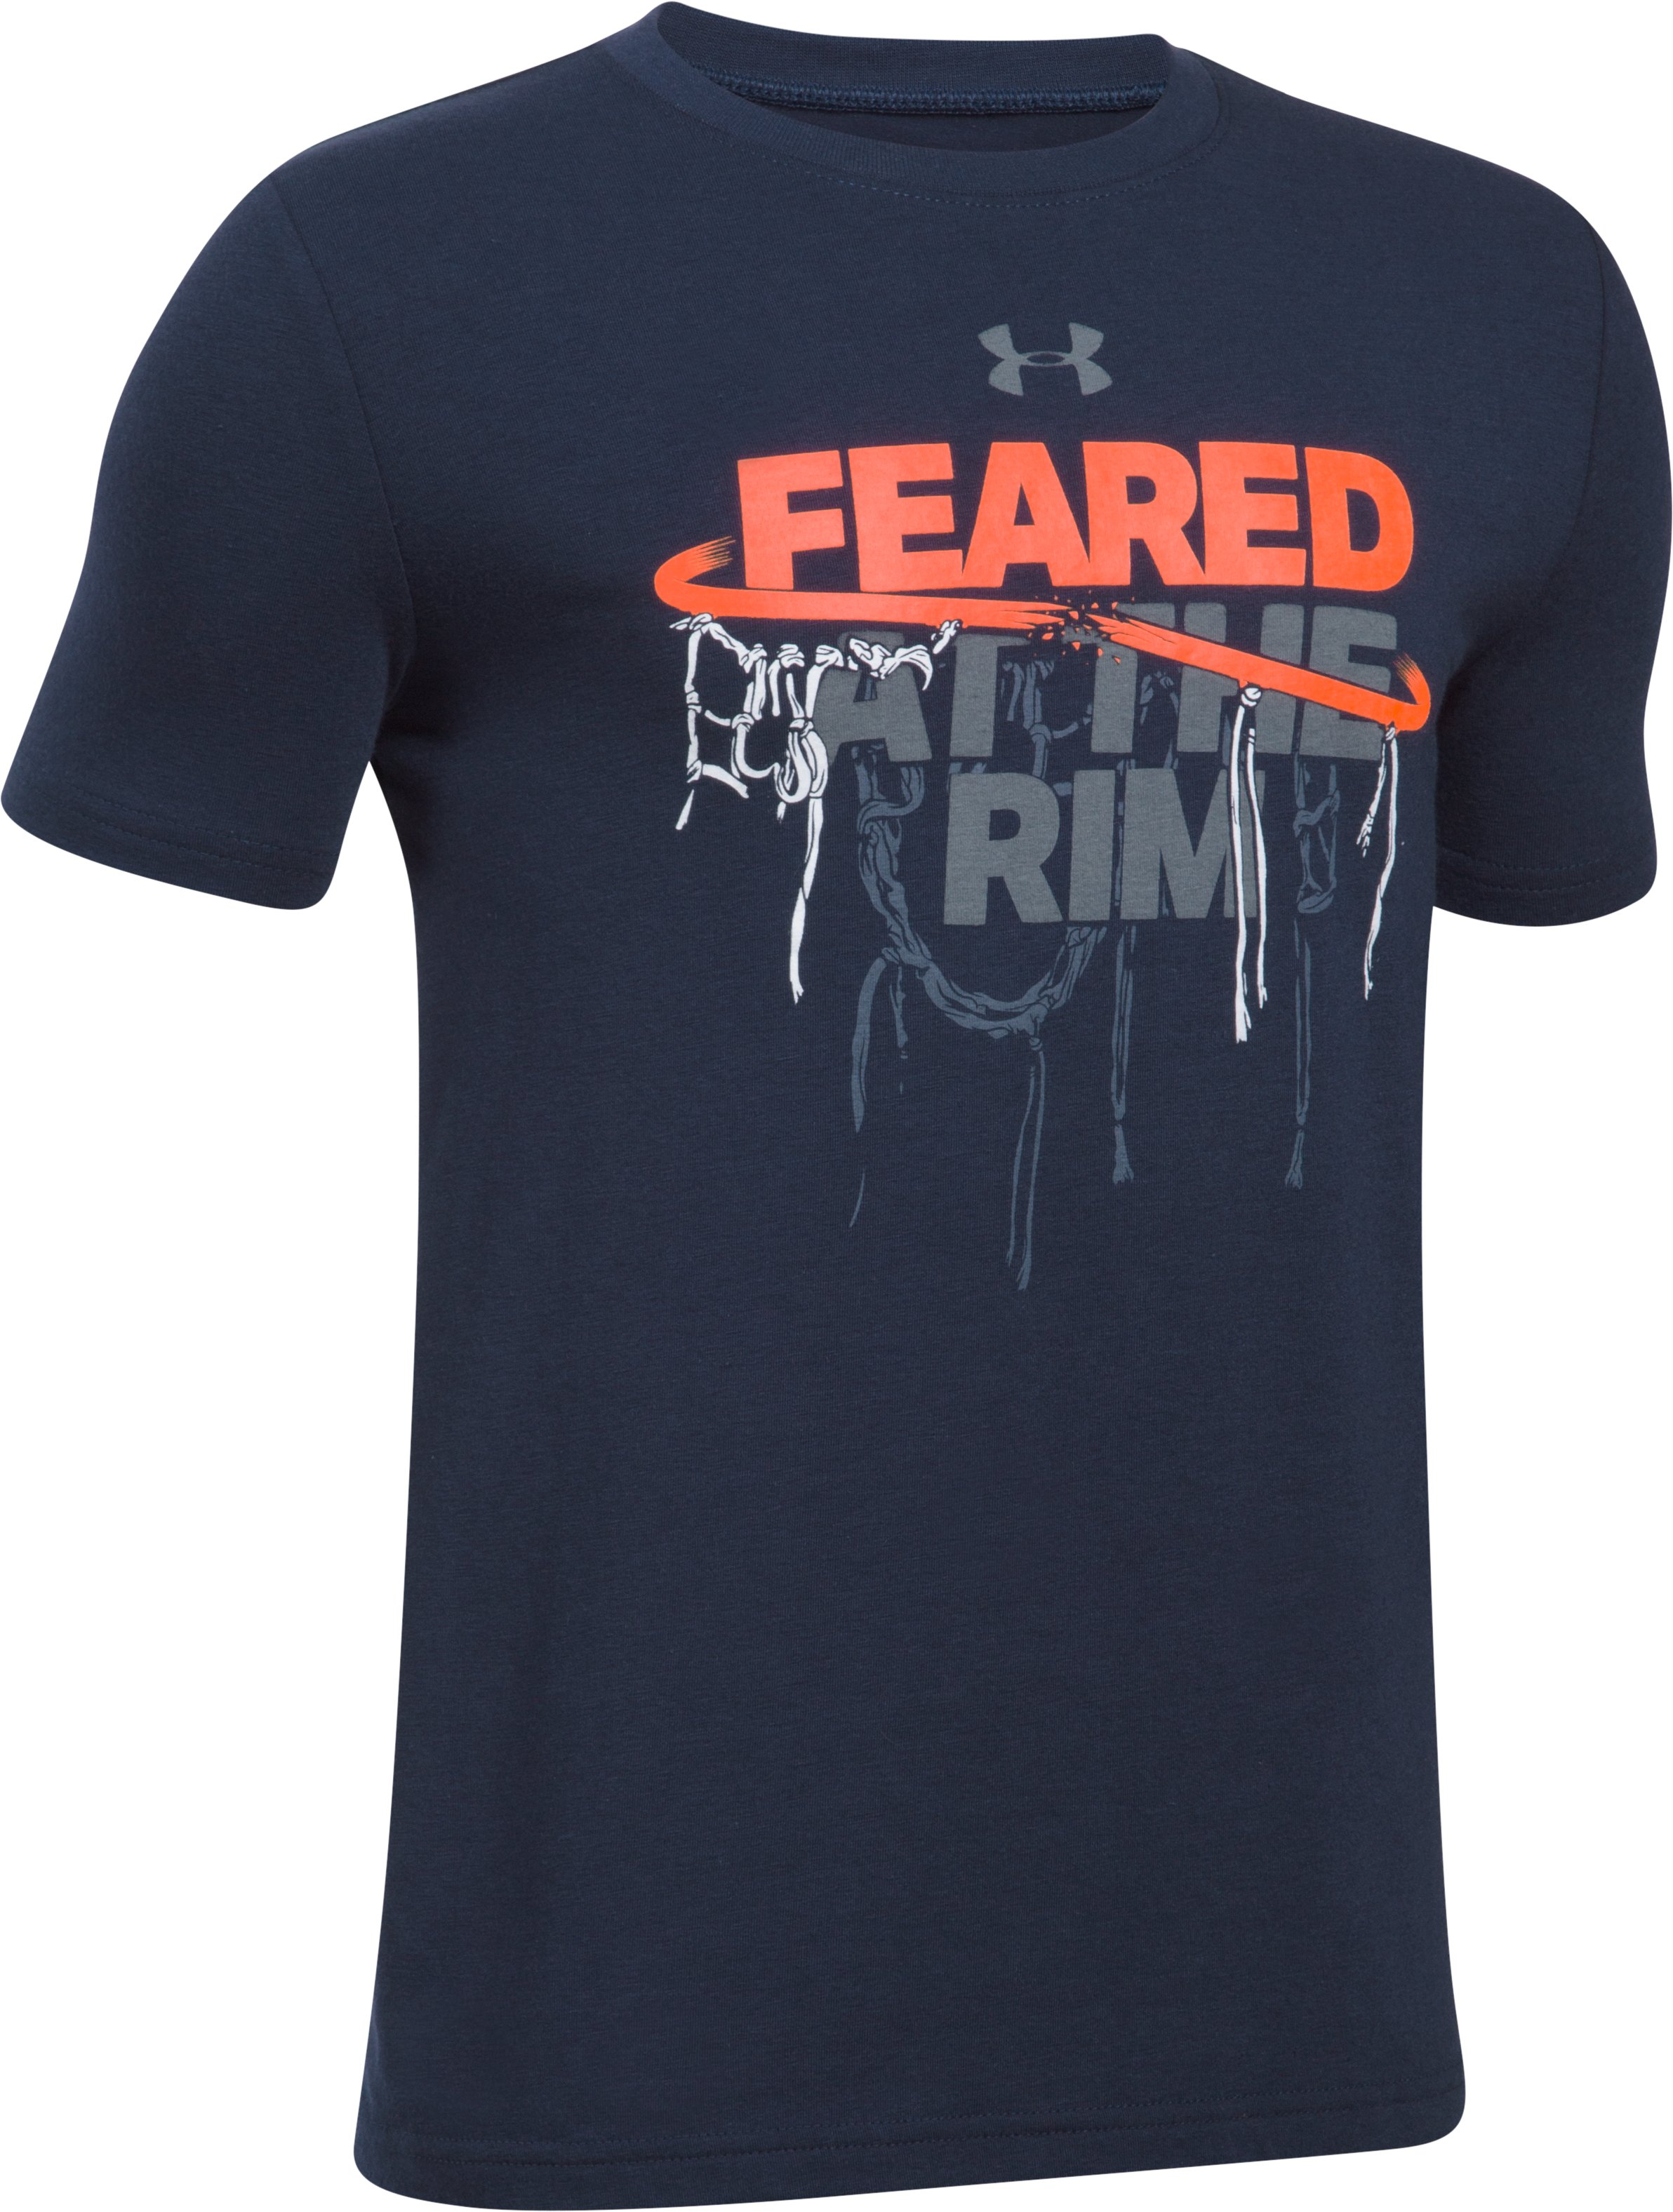 Boys' UA Feared At The Rim T-Shirt, Midnight Navy